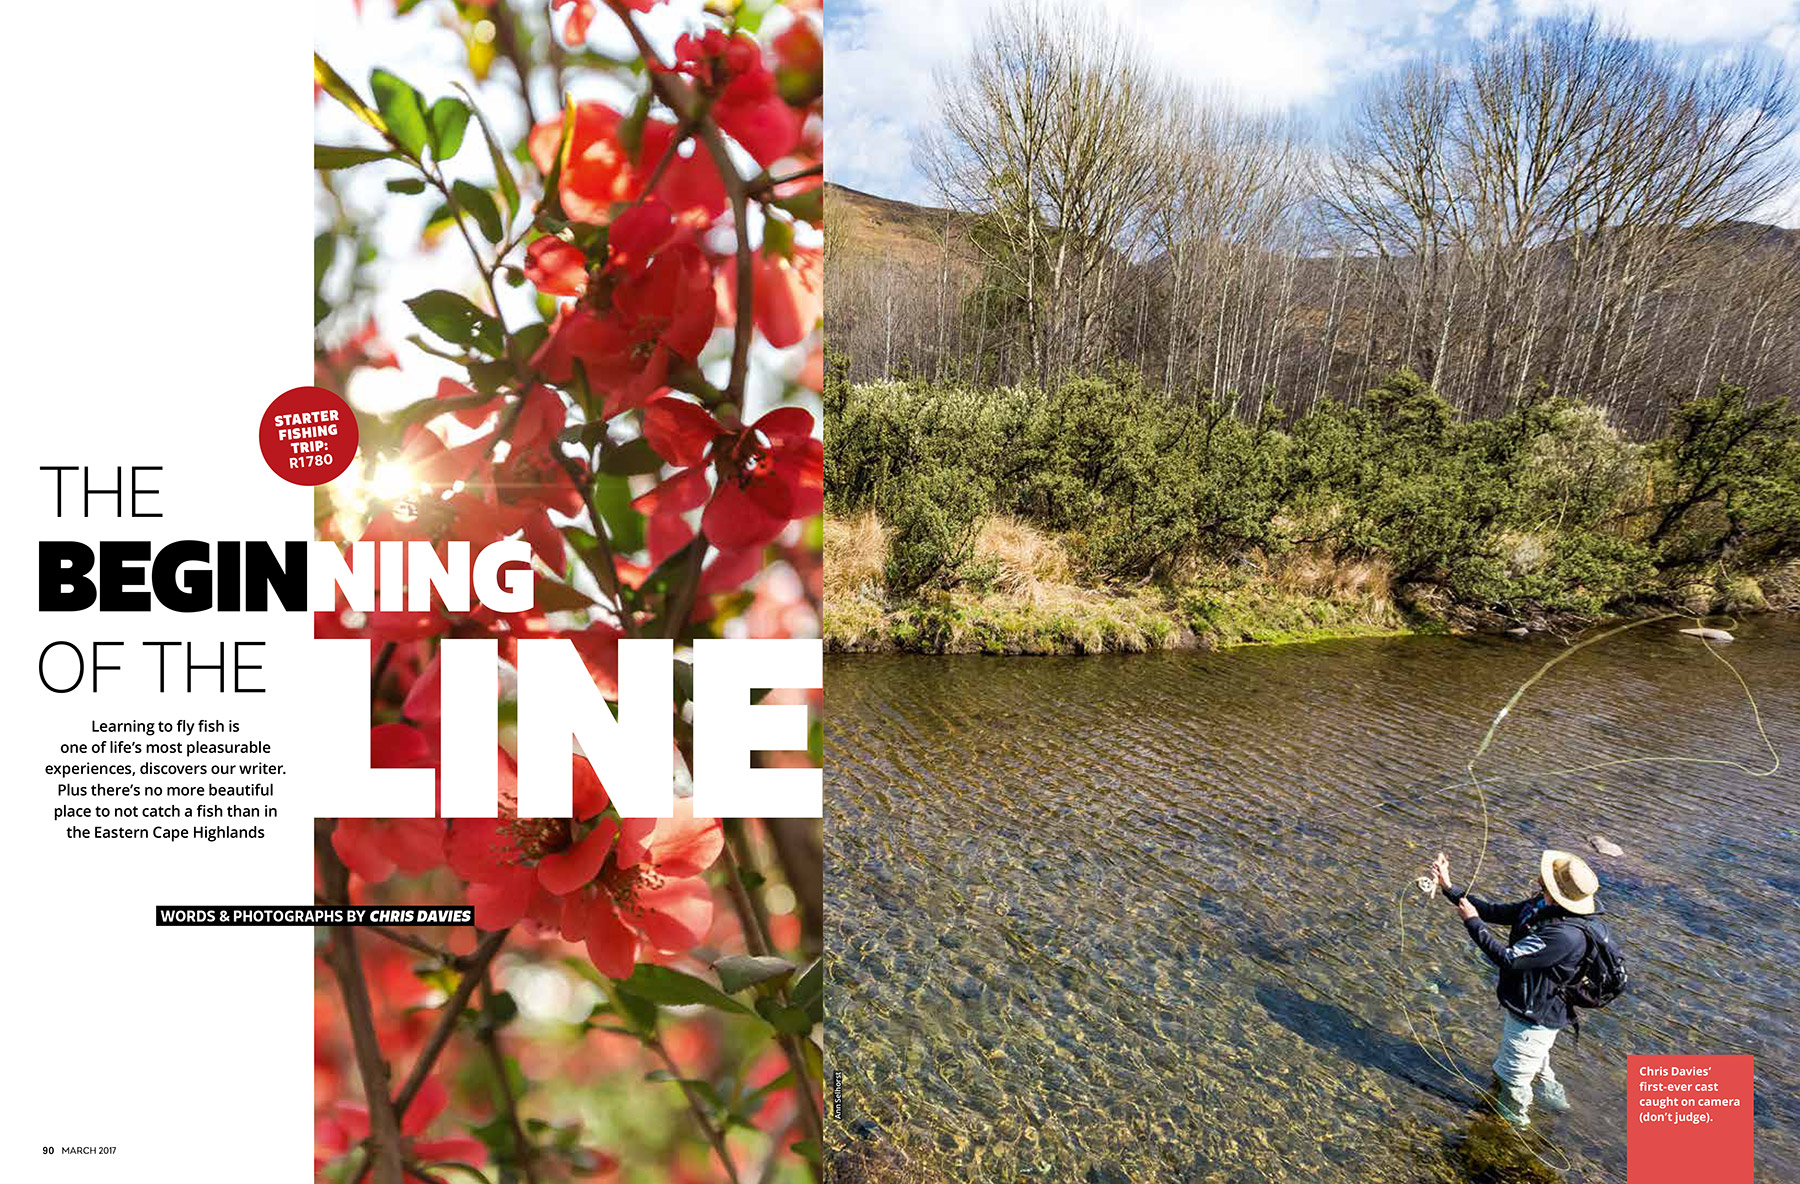 Getaway Magazine - Learning fly fishing in South Africa's Eastern Highlands - the prettiest place in the country not to catch a fish.